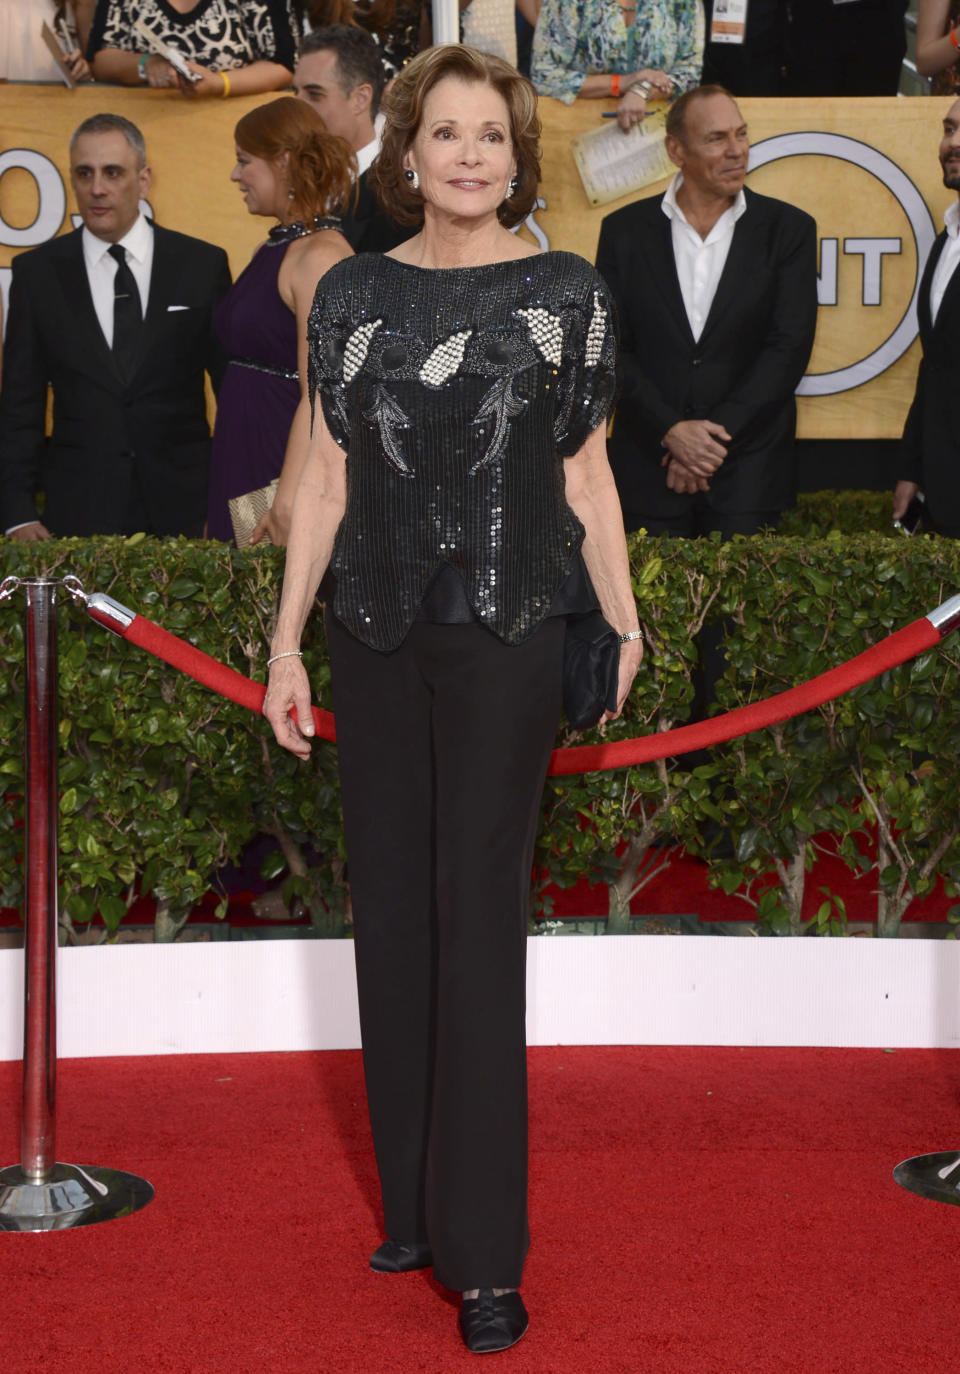 "FILE - Jessica Walter arrives at the 20th annual Screen Actors Guild Awards on Jan. 18, 2014, in Los Angeles. Walter, who played a scheming matriarch in TV's ""Arrested Development,"" has died. She was 80. Walter's death was confirmed Thursday, March 25, 2021, by her daughter, Brooke Bowman. The actor's best-known film roles included playing the stalker in Clint Eastwood's 1971 thriller, ""Play Misty for Me."" (Photo by Jordan Strauss/Invision/AP, File)"